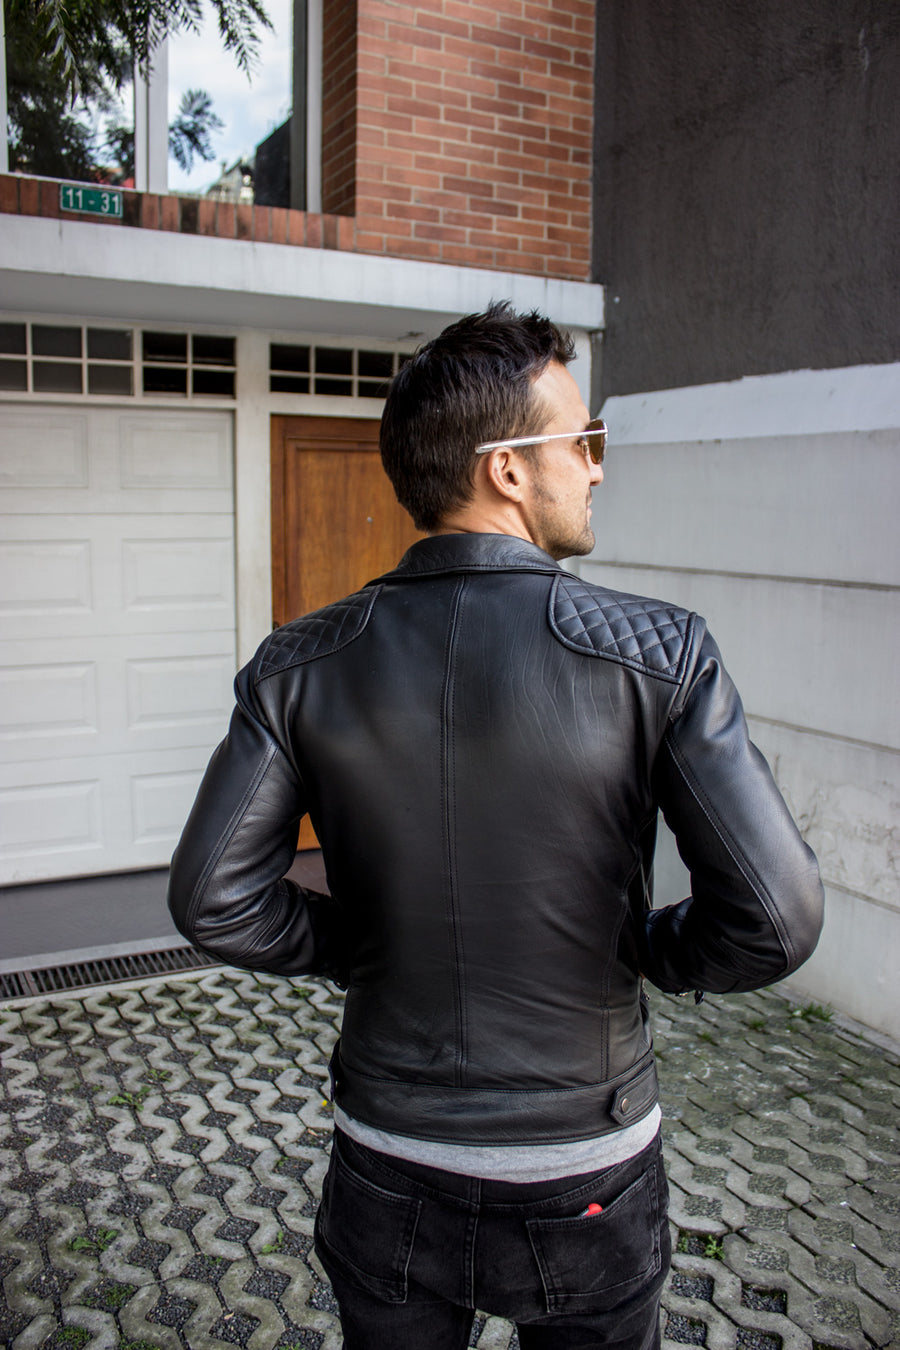 LUKAS BOLD CR Leather Jacket diamond Quilted - Black - Magic RUDE Video